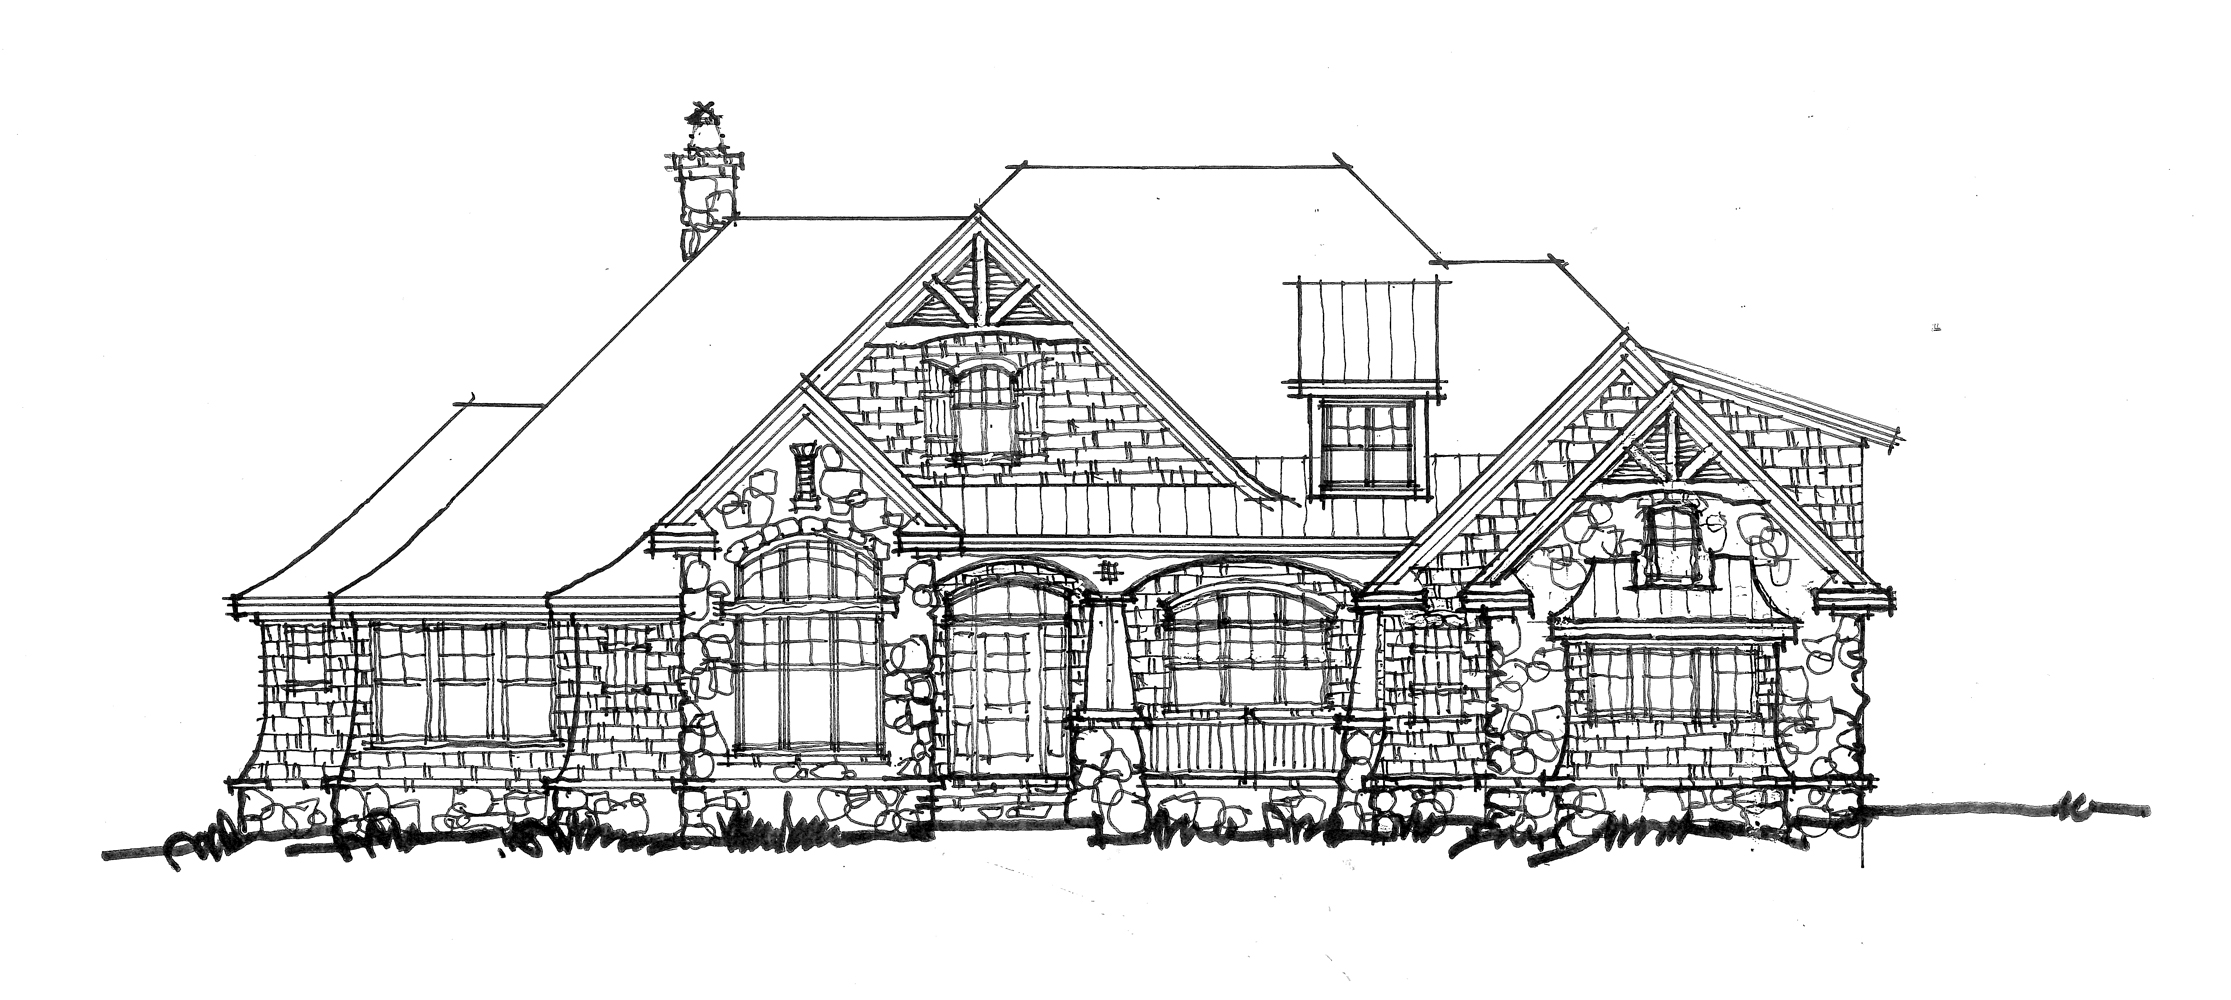 Home Plan 1410 - Front elevation